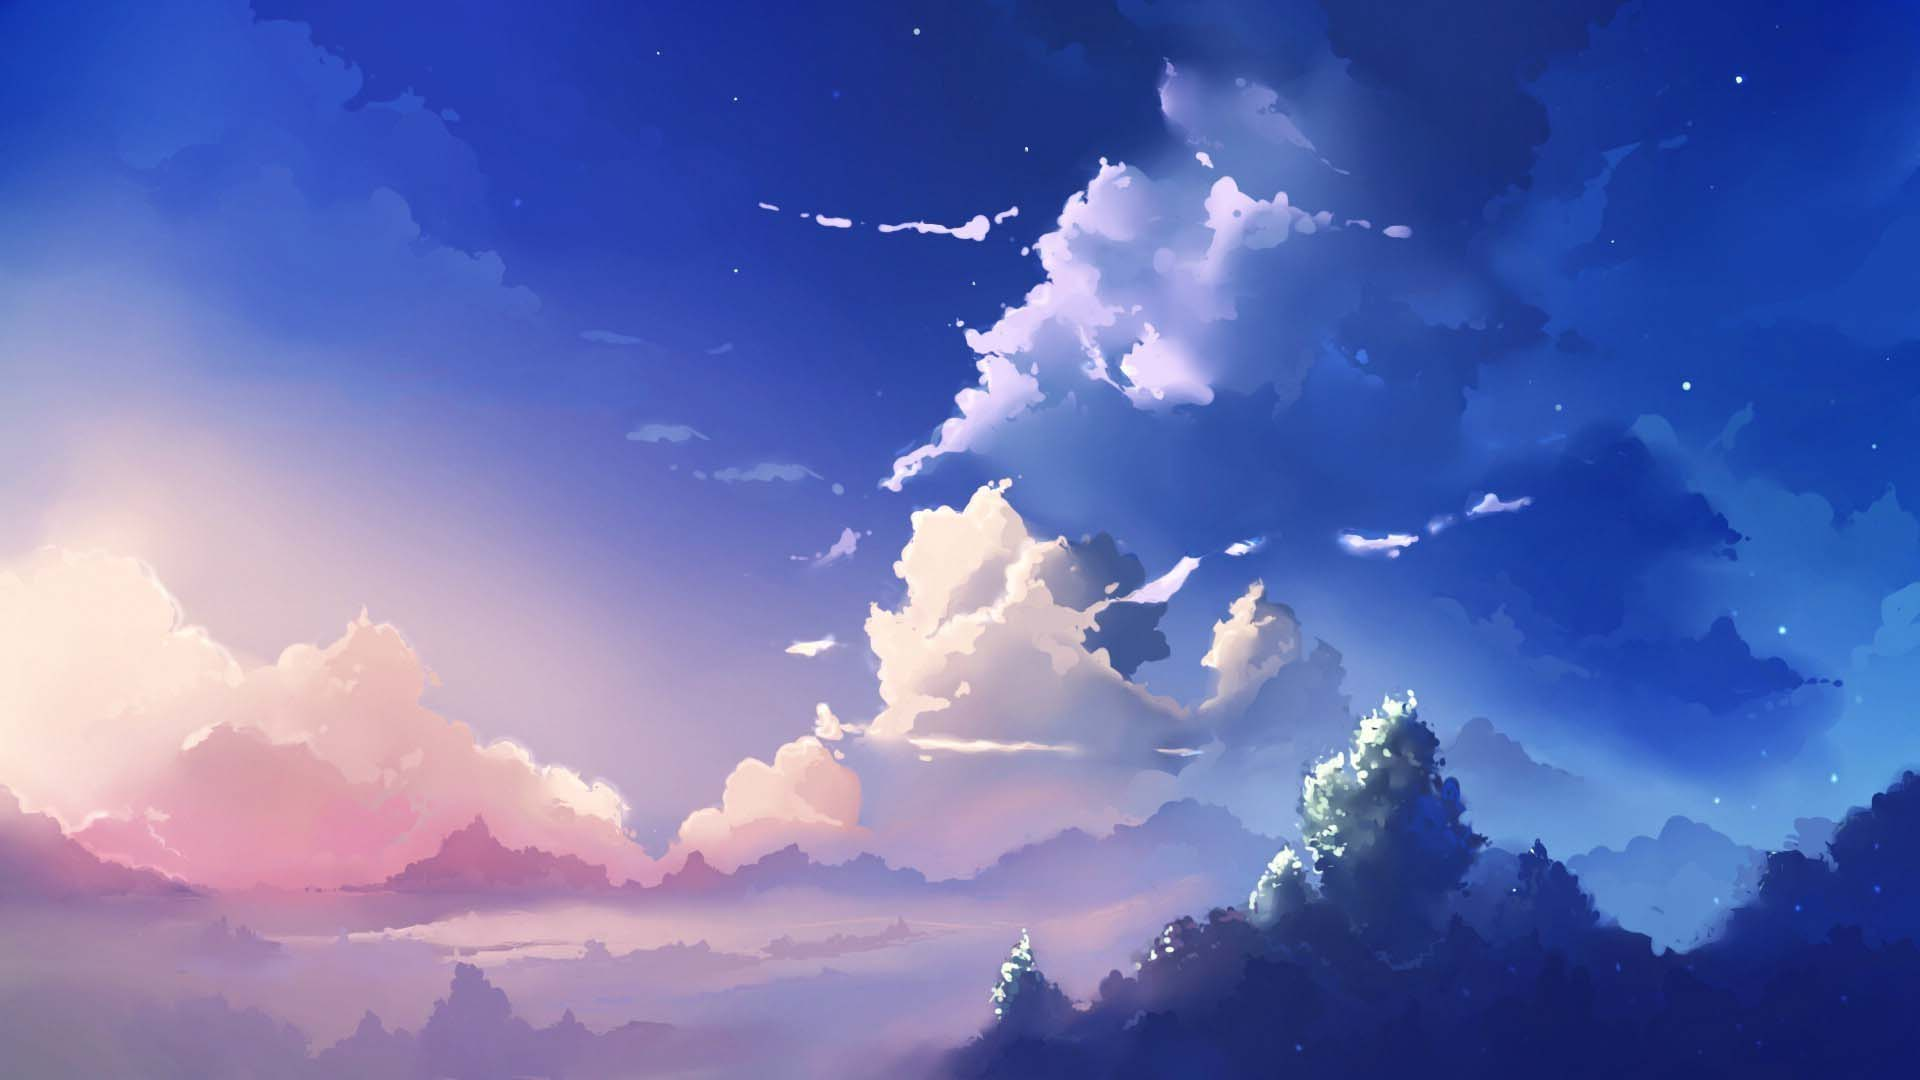 Sky wallpaper anime